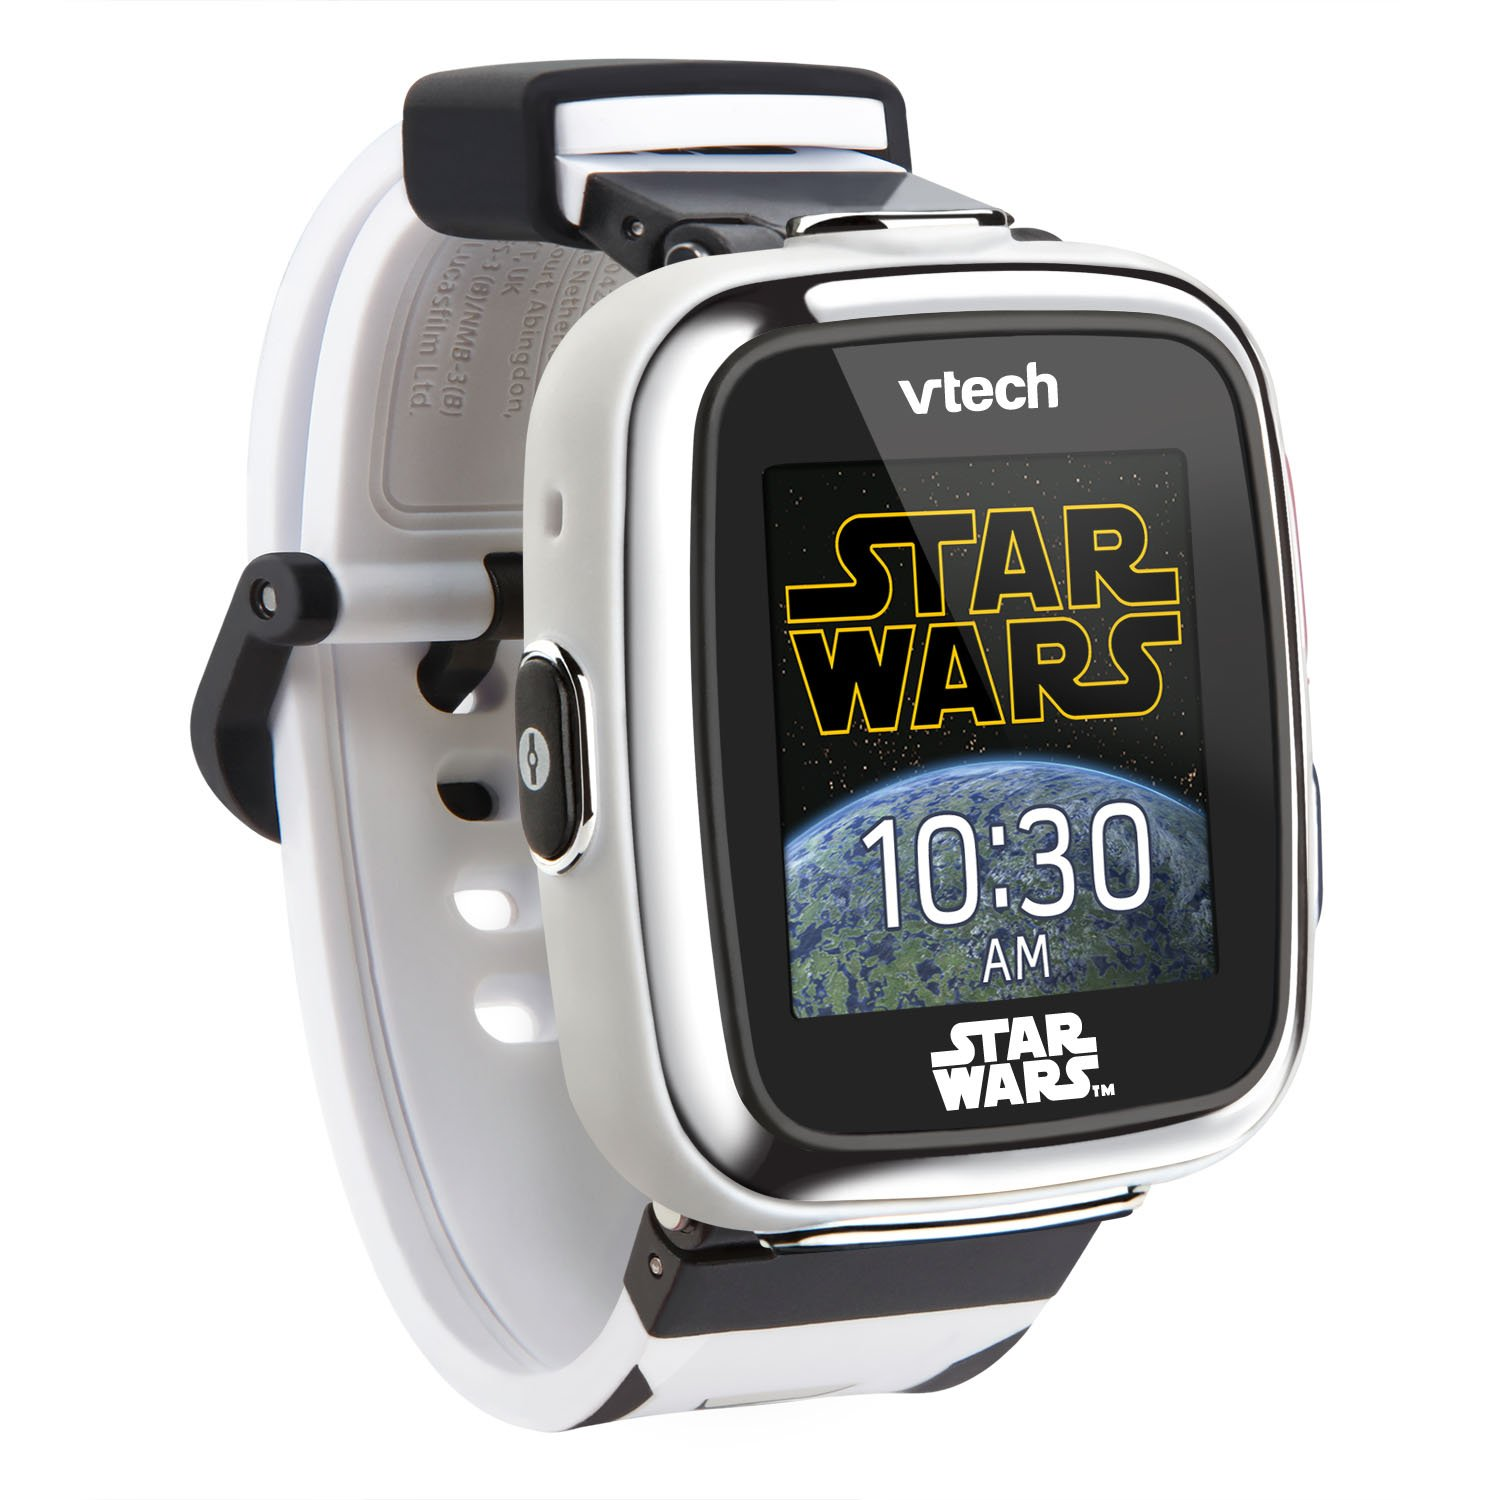 VTech Star Wars First Order Stormtrooper Smartwatch with Camera Amazon Exclusive, White by VTech (Image #4)